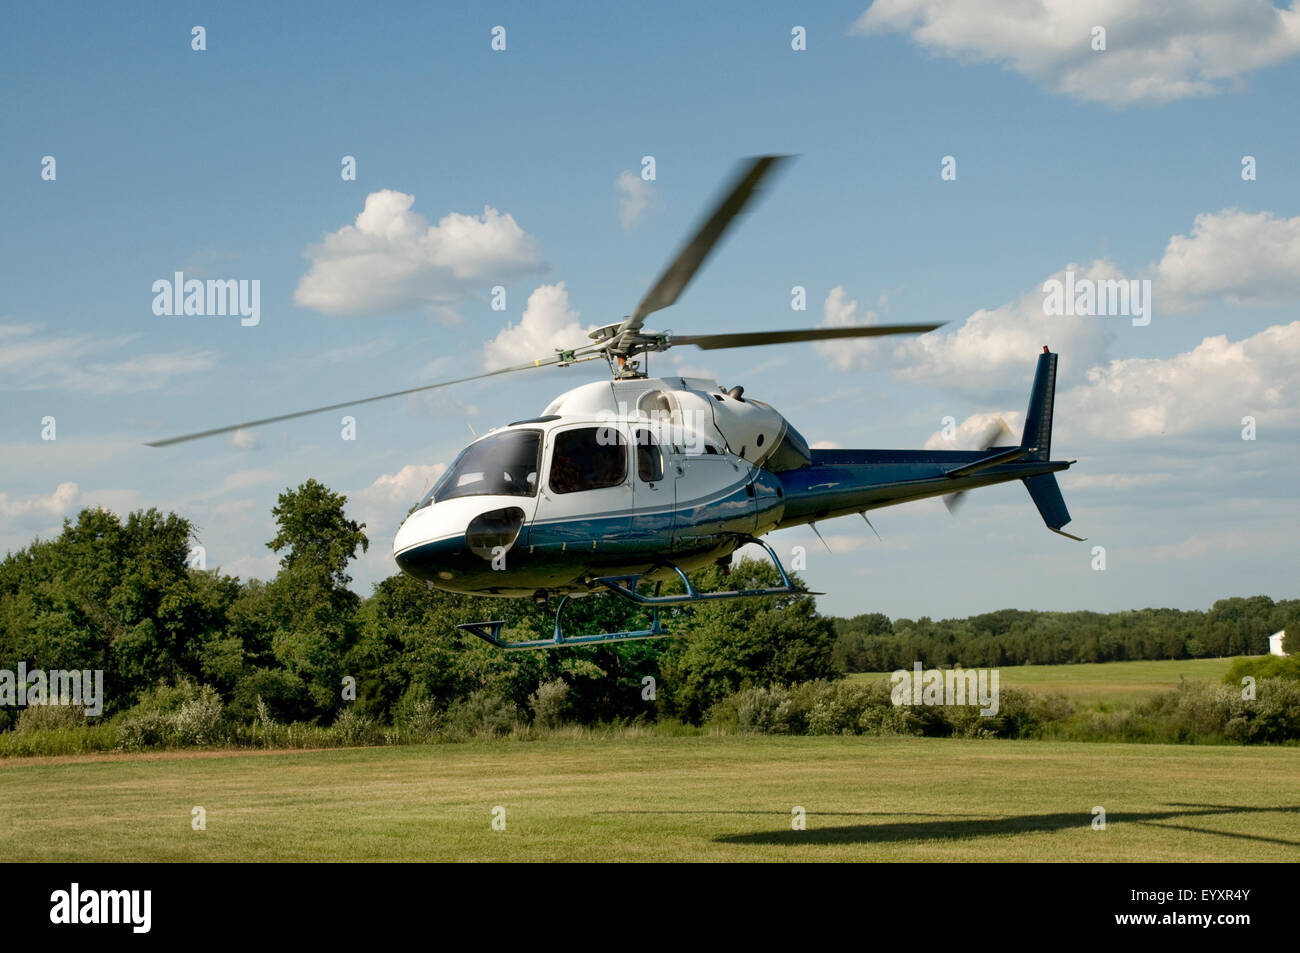 Blue and white helicopter taking off or landing in a field - Stock Image